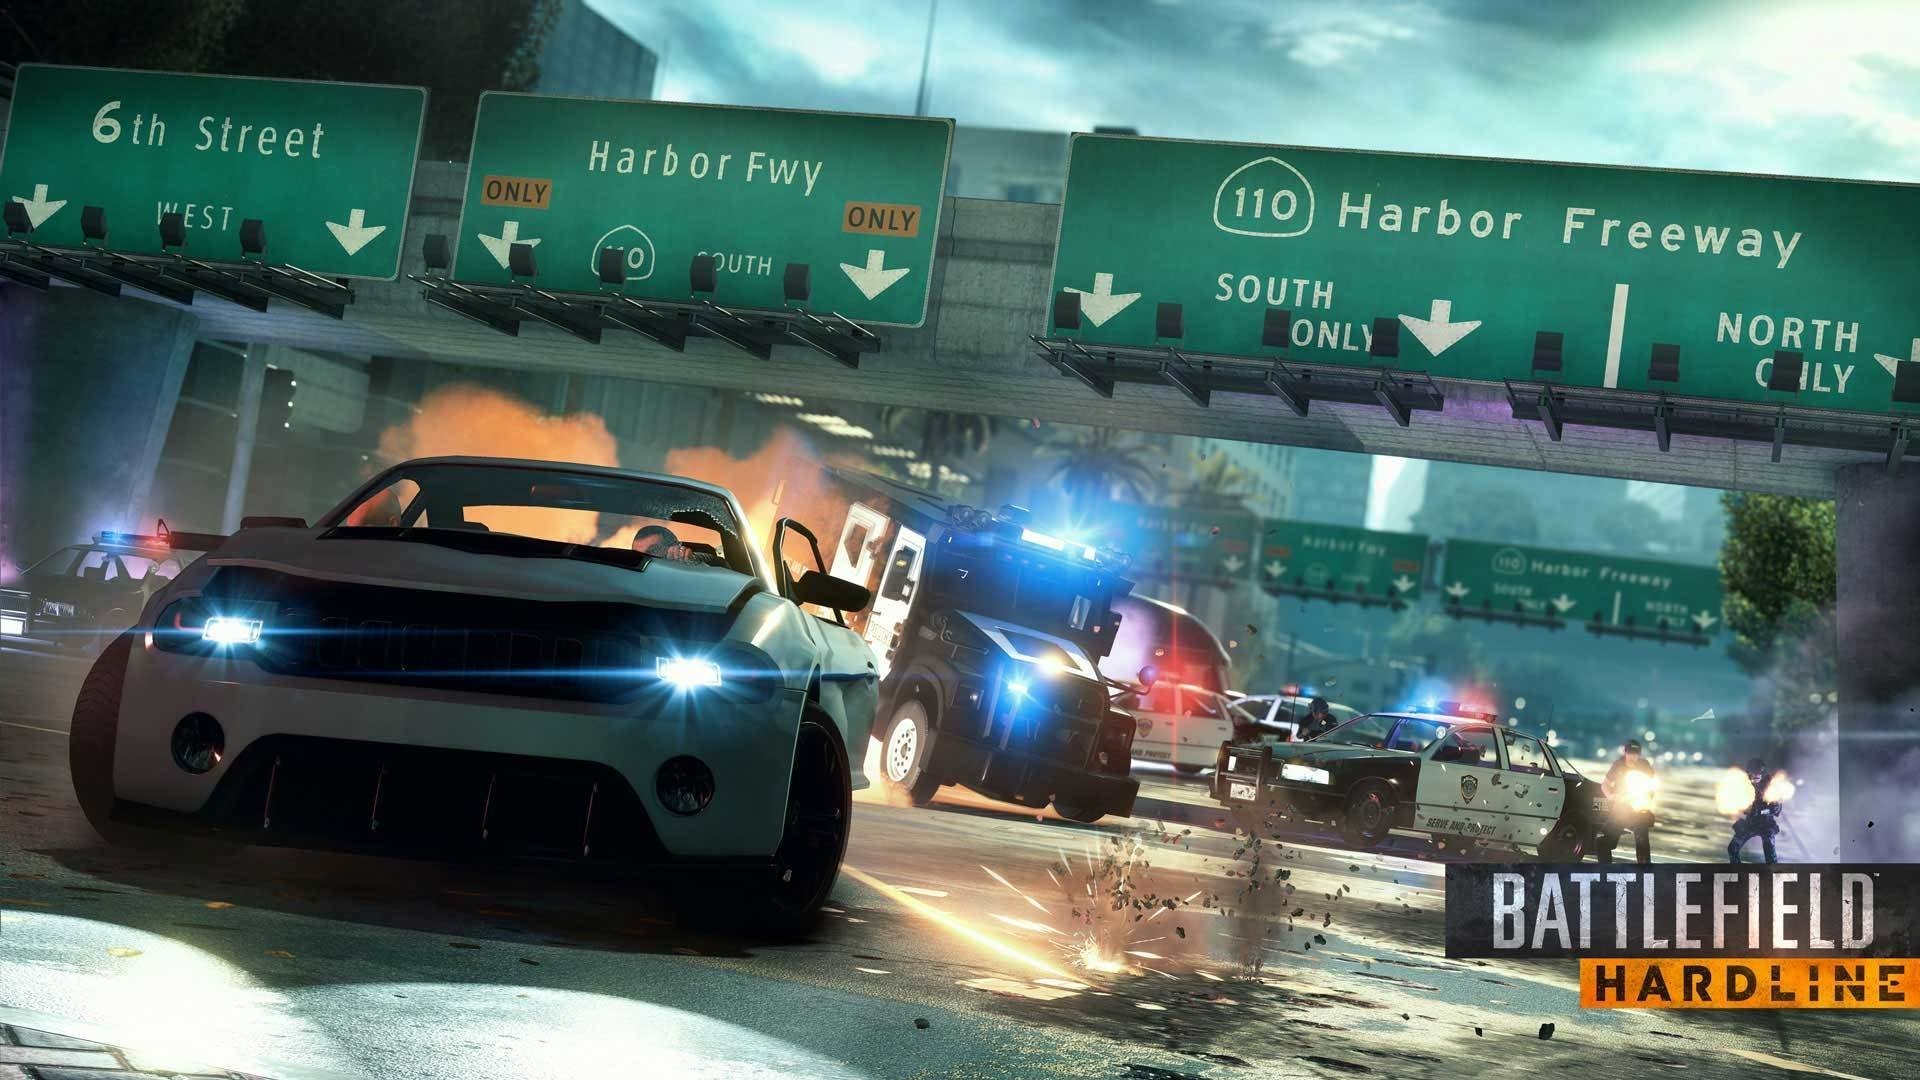 Video Game - Battlefield Hardline  Wallpaper